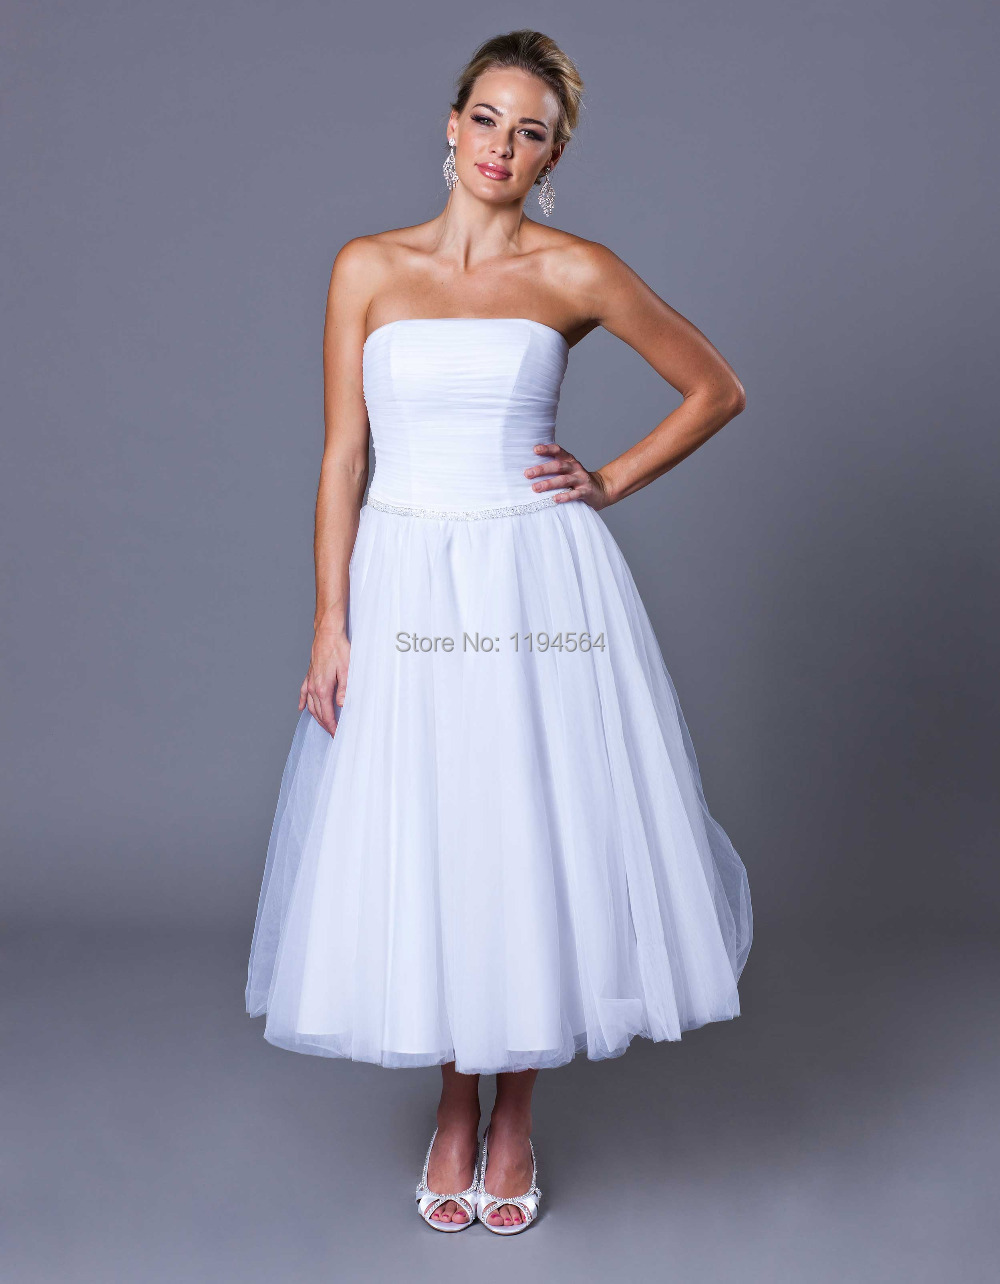 Tea Length Fall Dresses For Women A Line Wedding Dress Tea